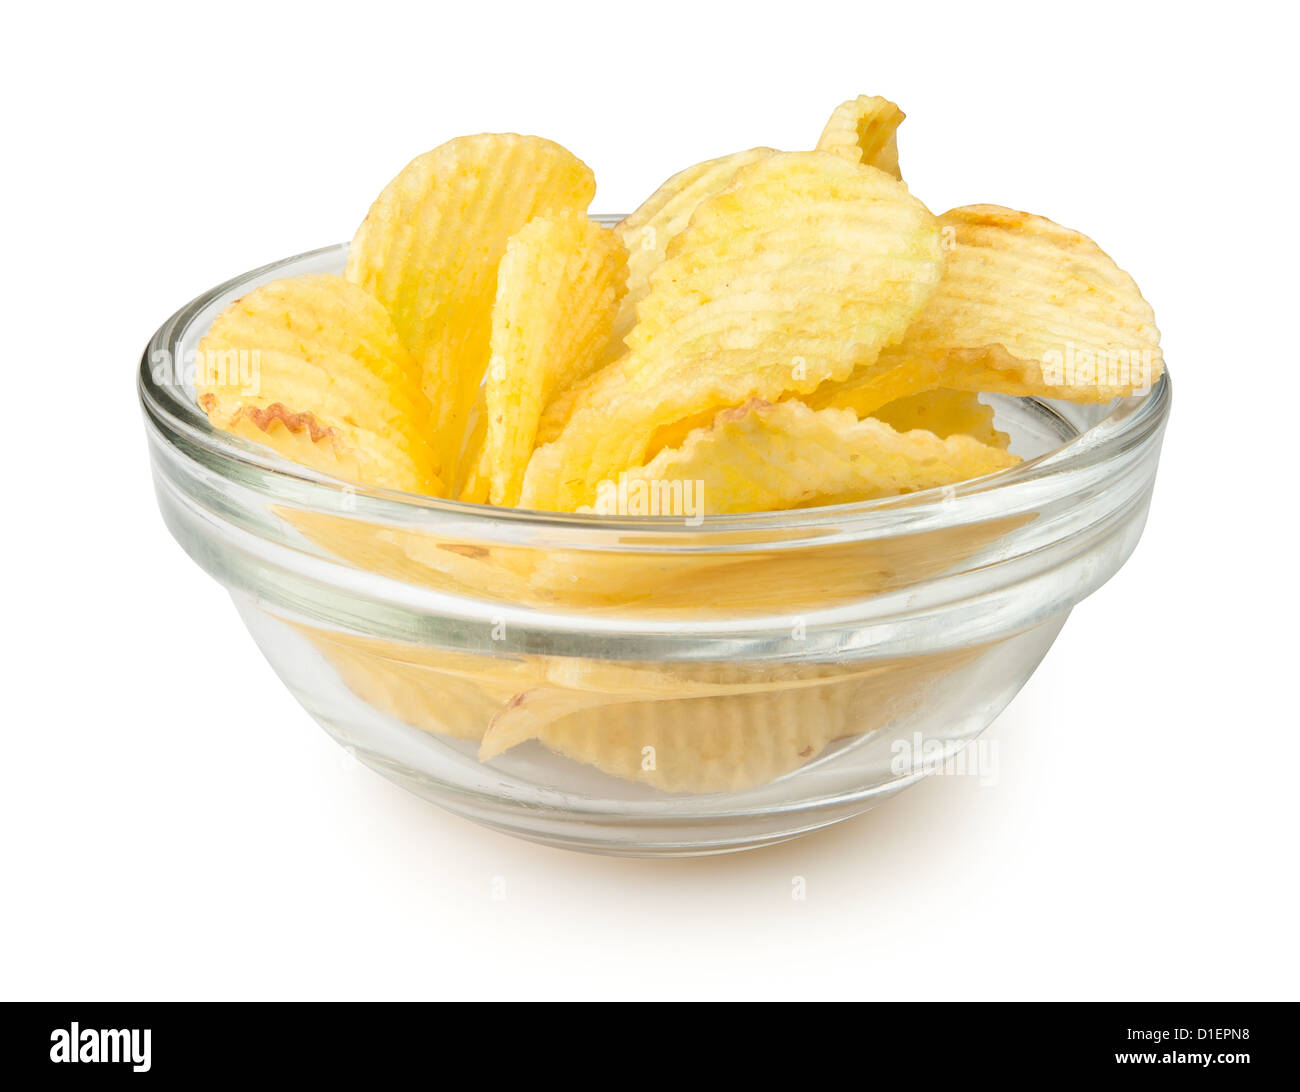 chips bowl on white background - Stock Image